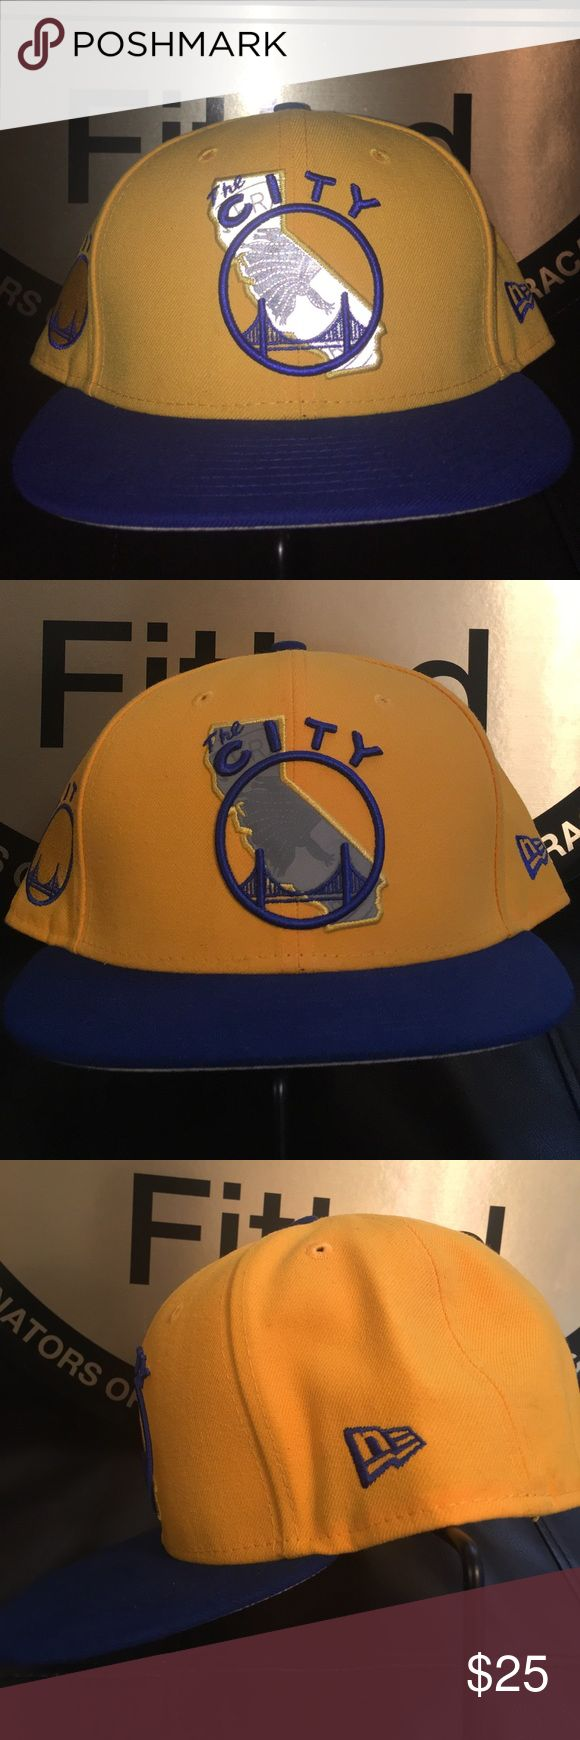 GOLDEN STATE SF WARRIORS NEW ERA 59FIFTY 7 5/8 Pre-owned in GREAT CONDITION no damage or stains from smoke free home.  New era cap 59fifty fitted sz 7 5/8 ALL ORDERS SHIP NEXT BUSINESS DAY WITH CLEARED PAYMENT  THANKS FOR YOUR INTEREST! New Era Accessories Hats